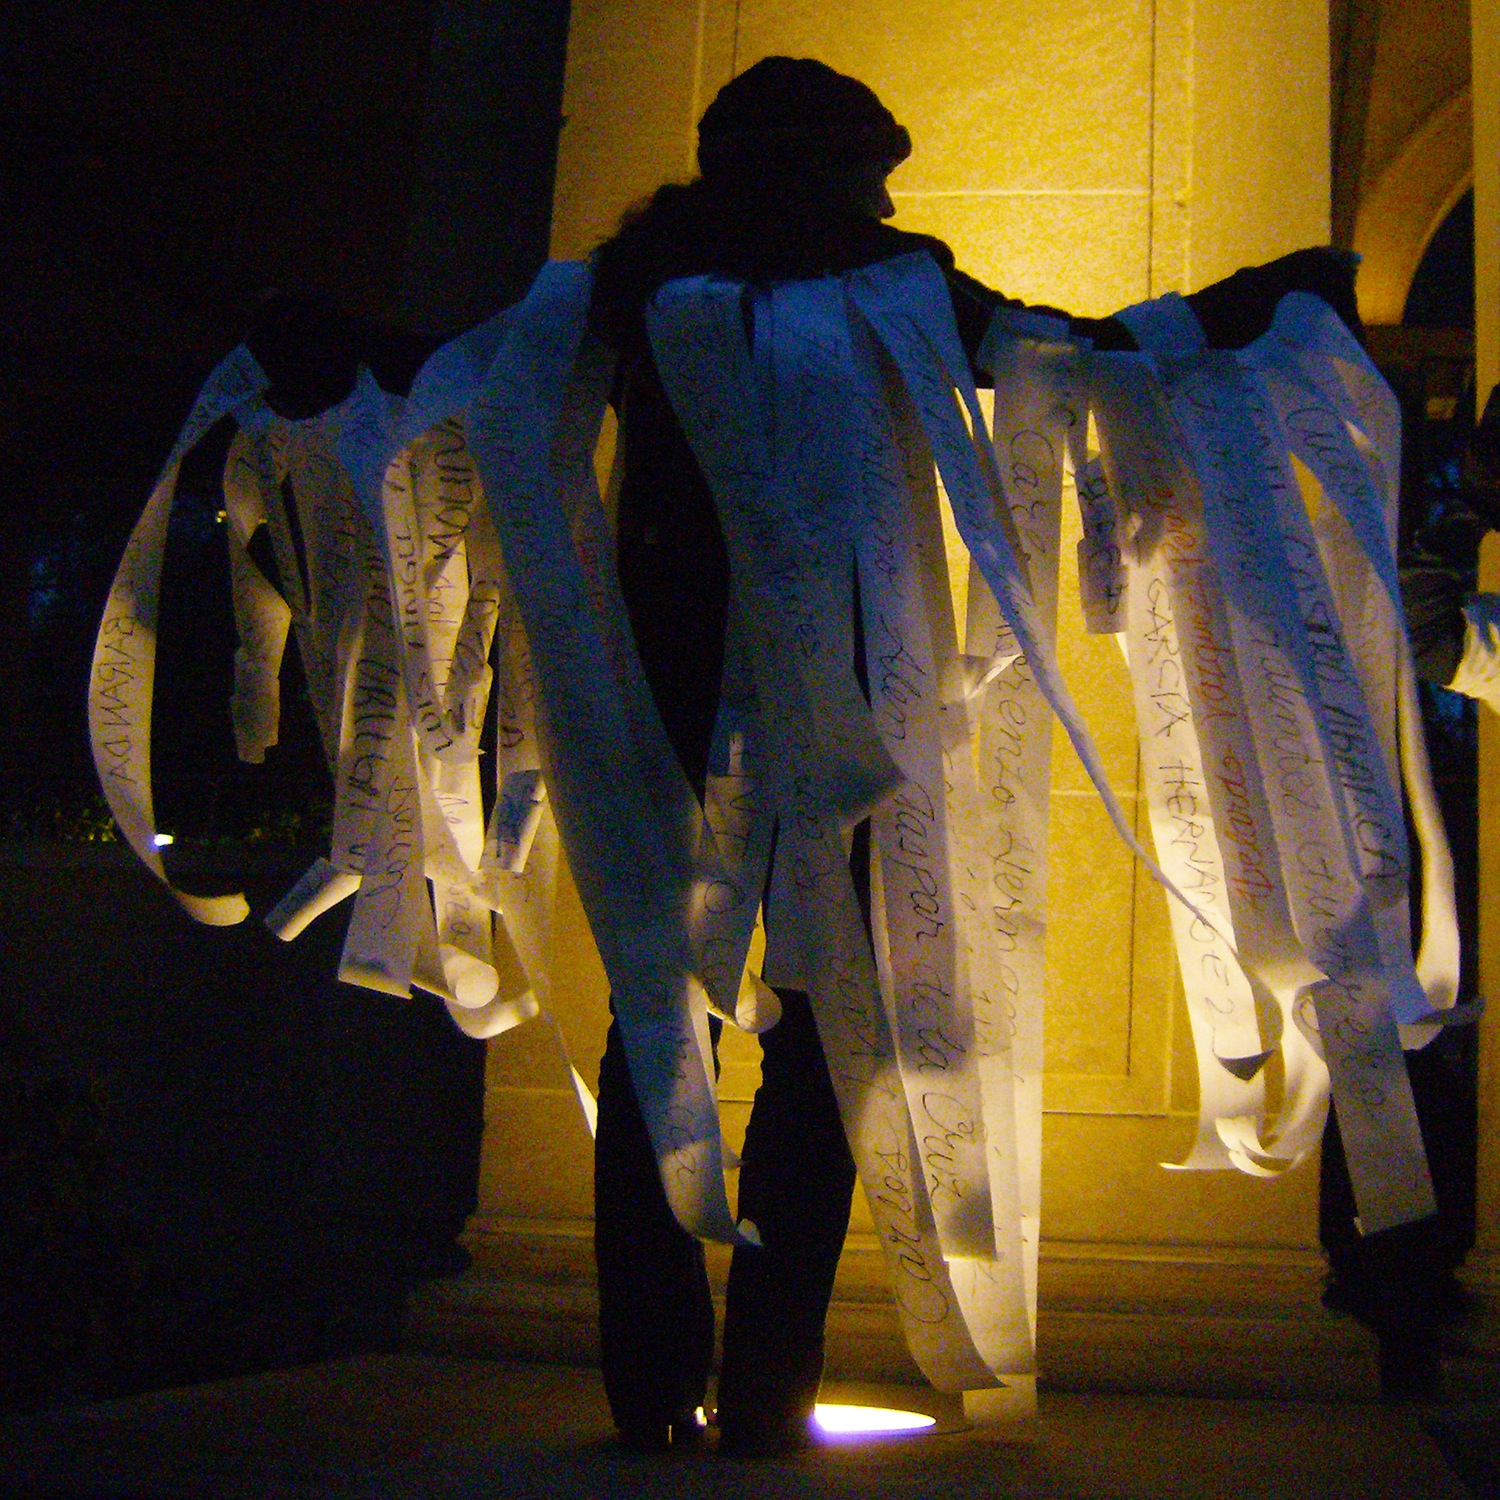 Tribute to the Disappeared_Andrea Arroyo_43 Wings